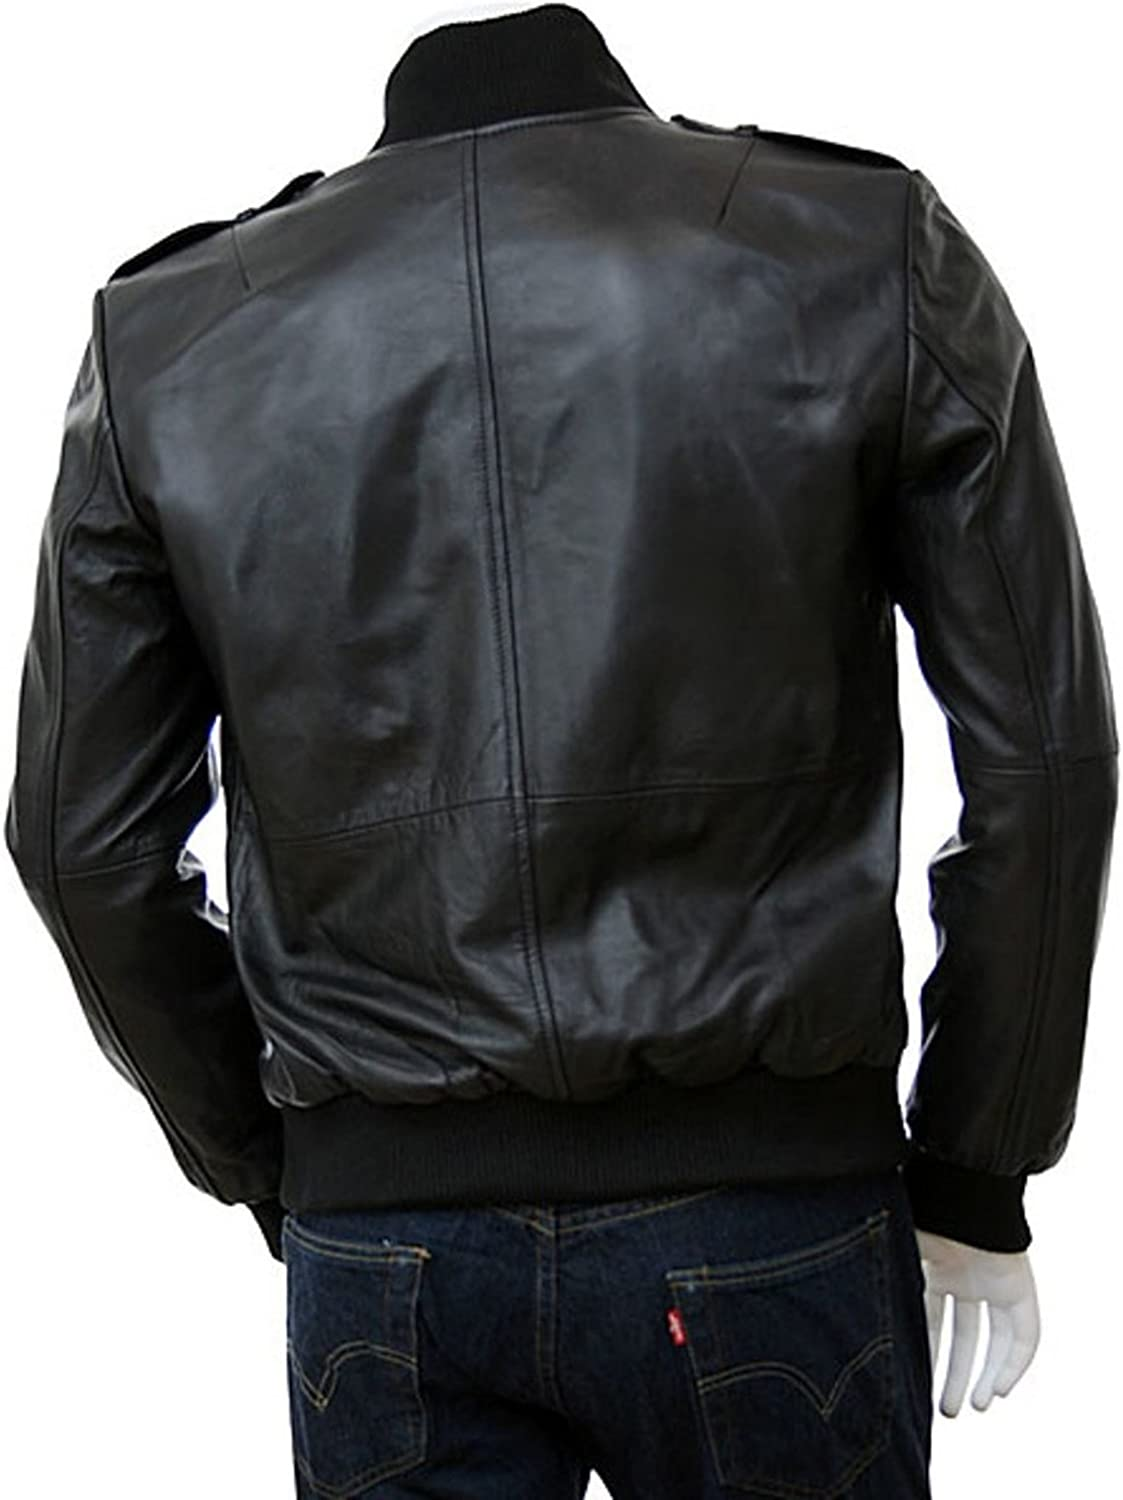 Black Friday Men Motorcycle Cow Leather Jacket Coat Outwear Jackets LFC835 XXL